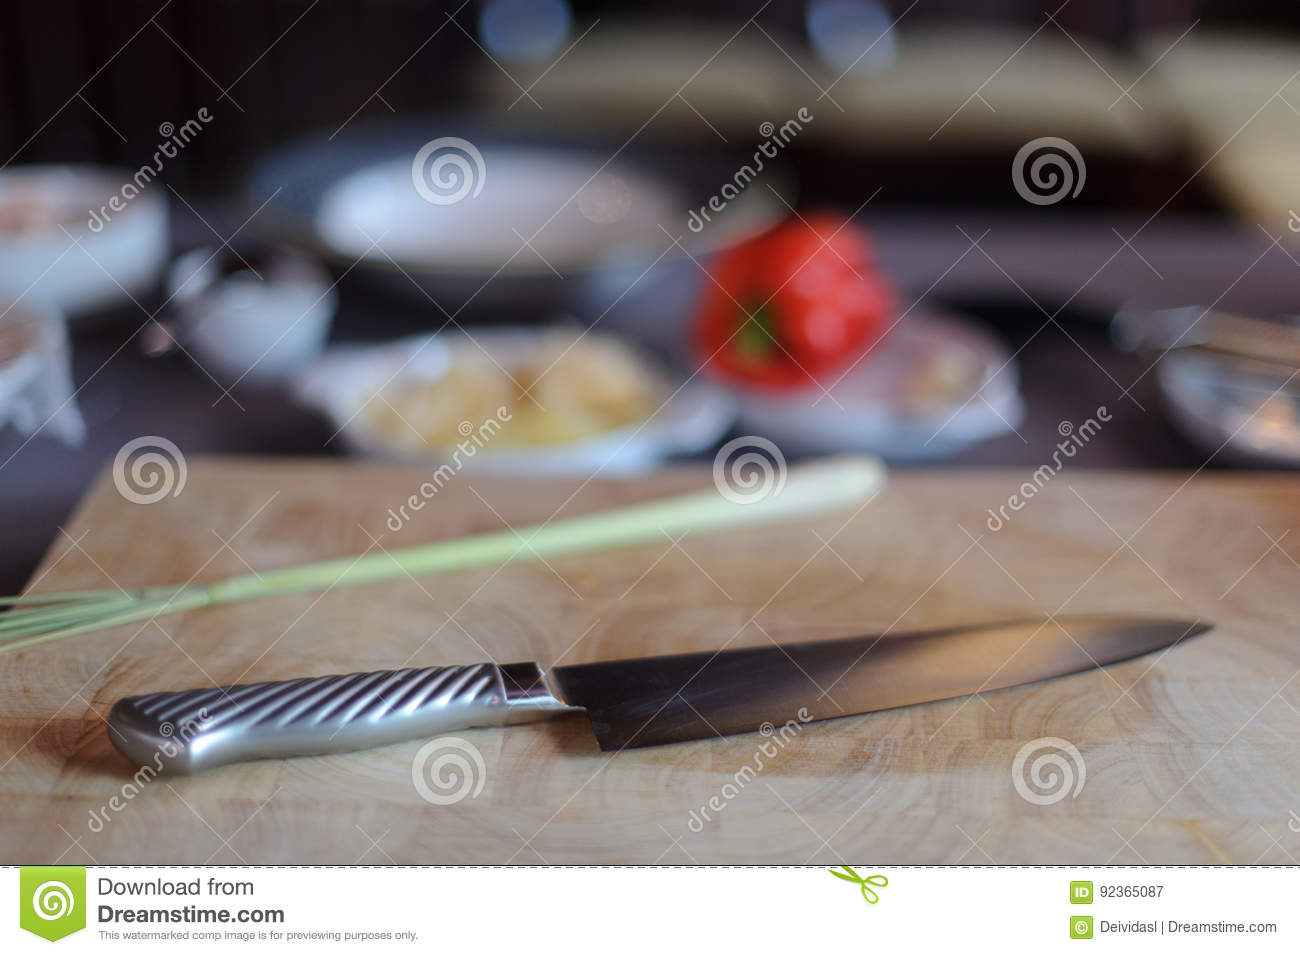 Chef knife with ingredients